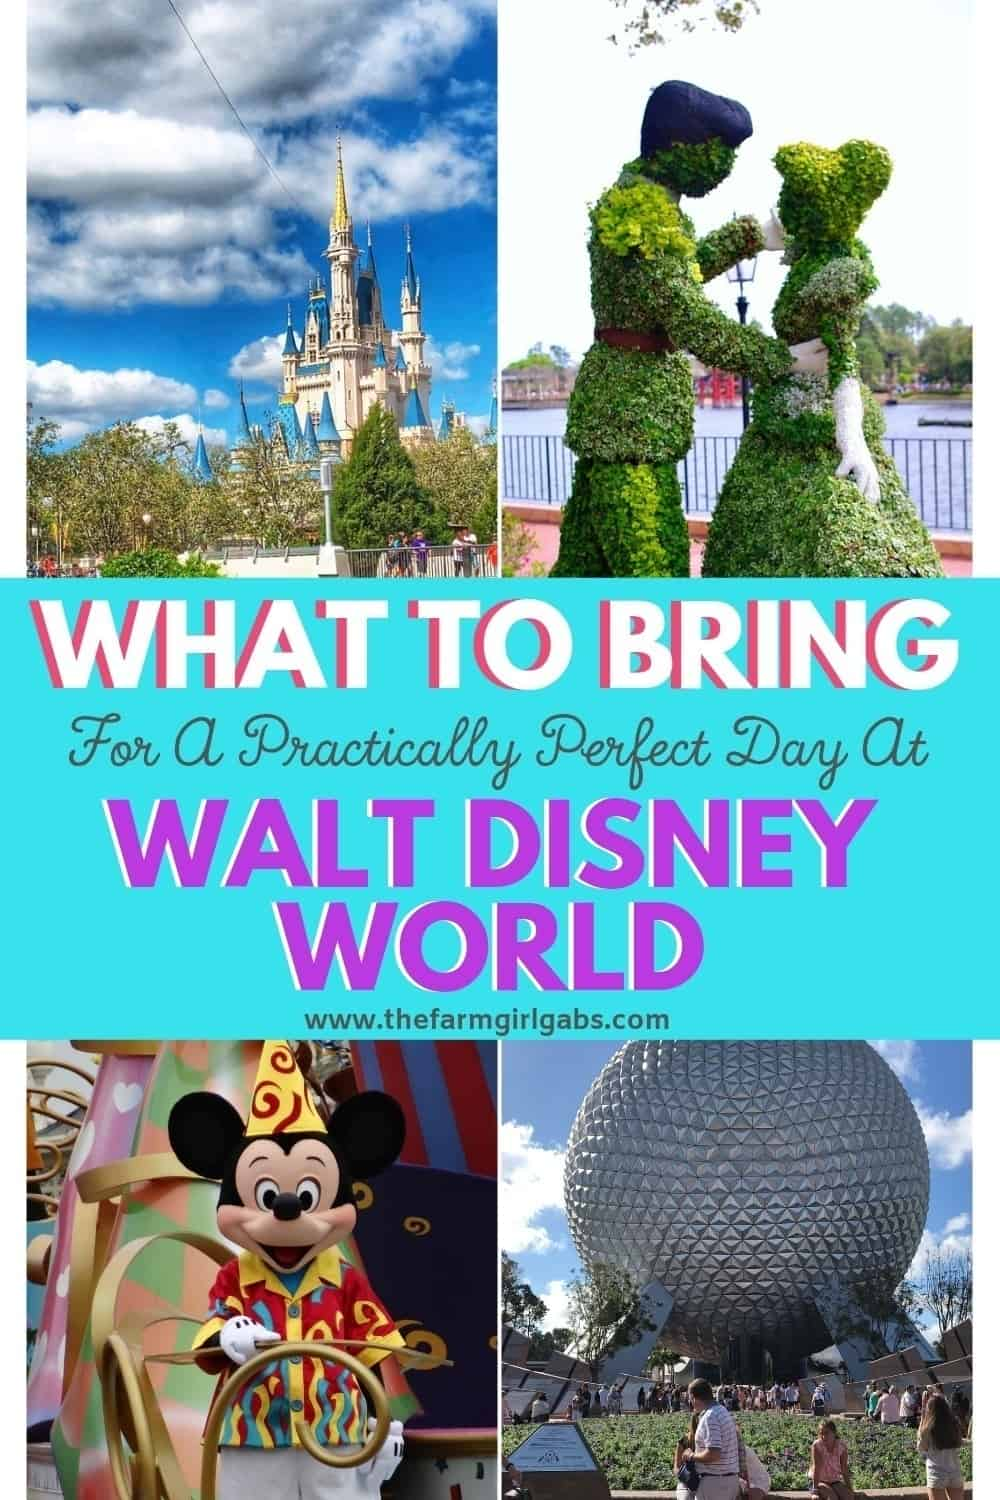 Are you ready to do Disney? Here are some helpful Walt Disney World Tips for What To Pack For A Practically Perfect Day At Walt Disney World. Check out this ulitmate disney packing tips post for your day trip to the parks. #waltdisneyworld #disneypackingtips #disneyland